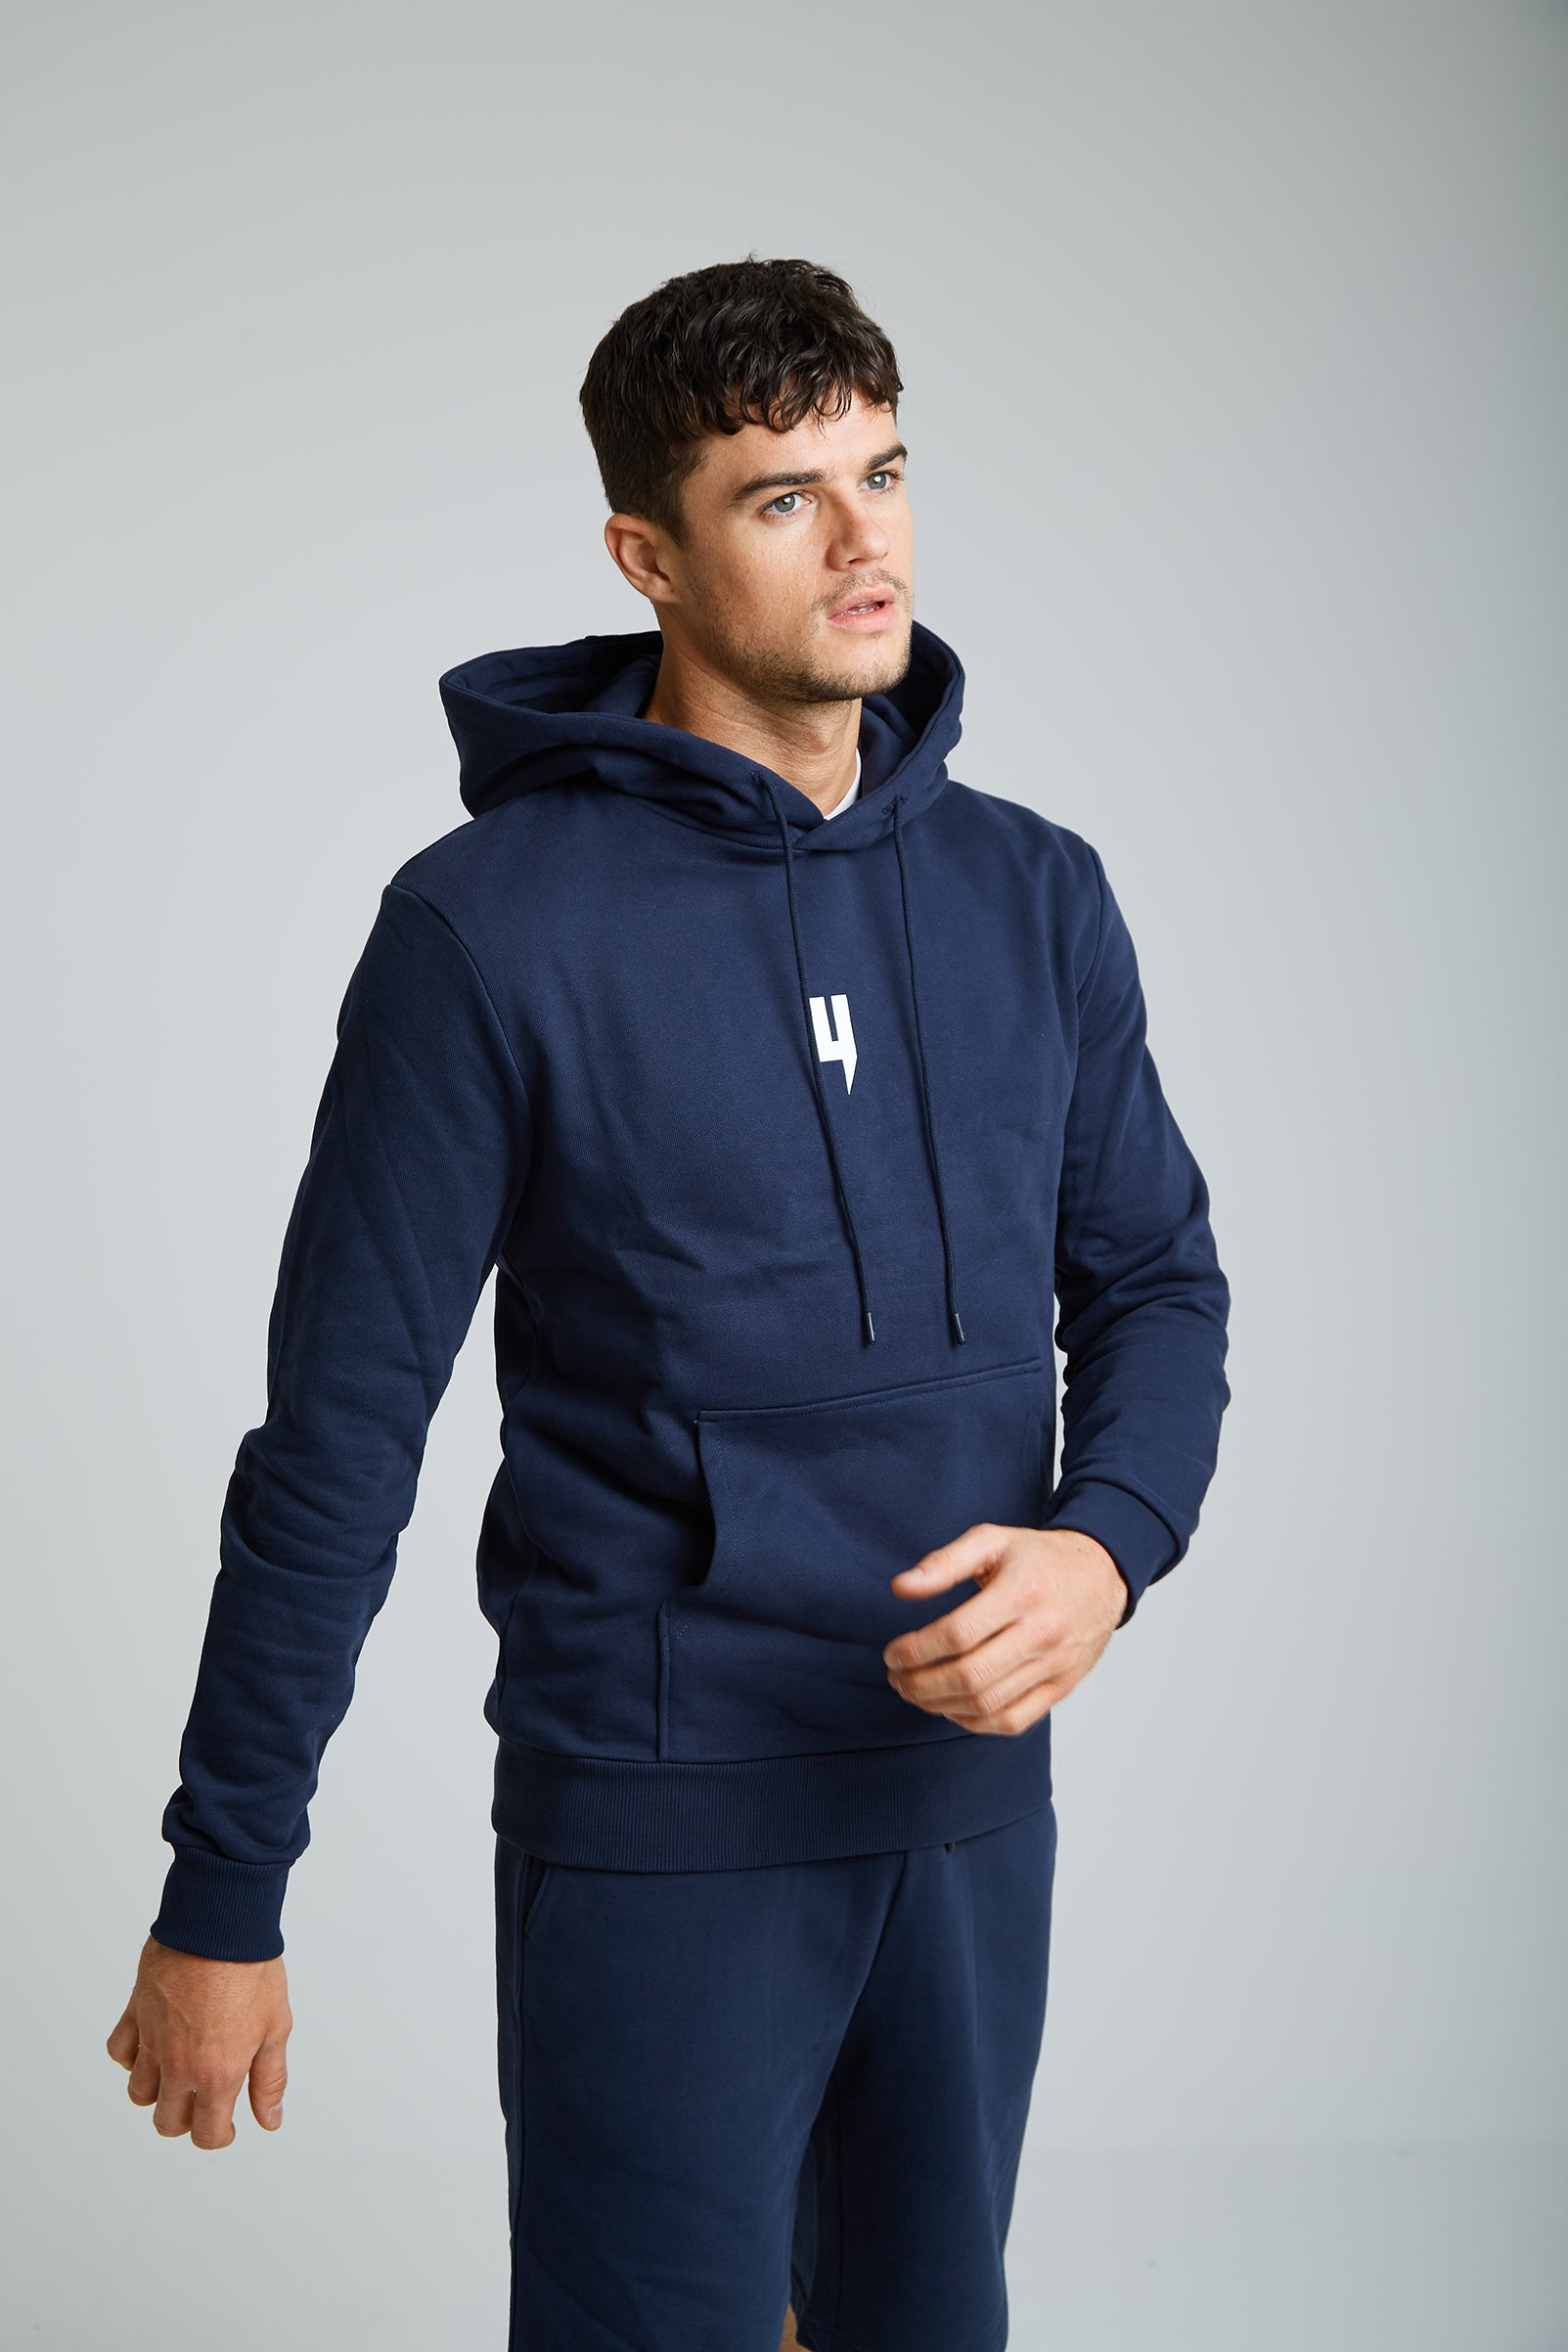 YELIR WORLD Y LOGO HOODY NAVY/WHITE